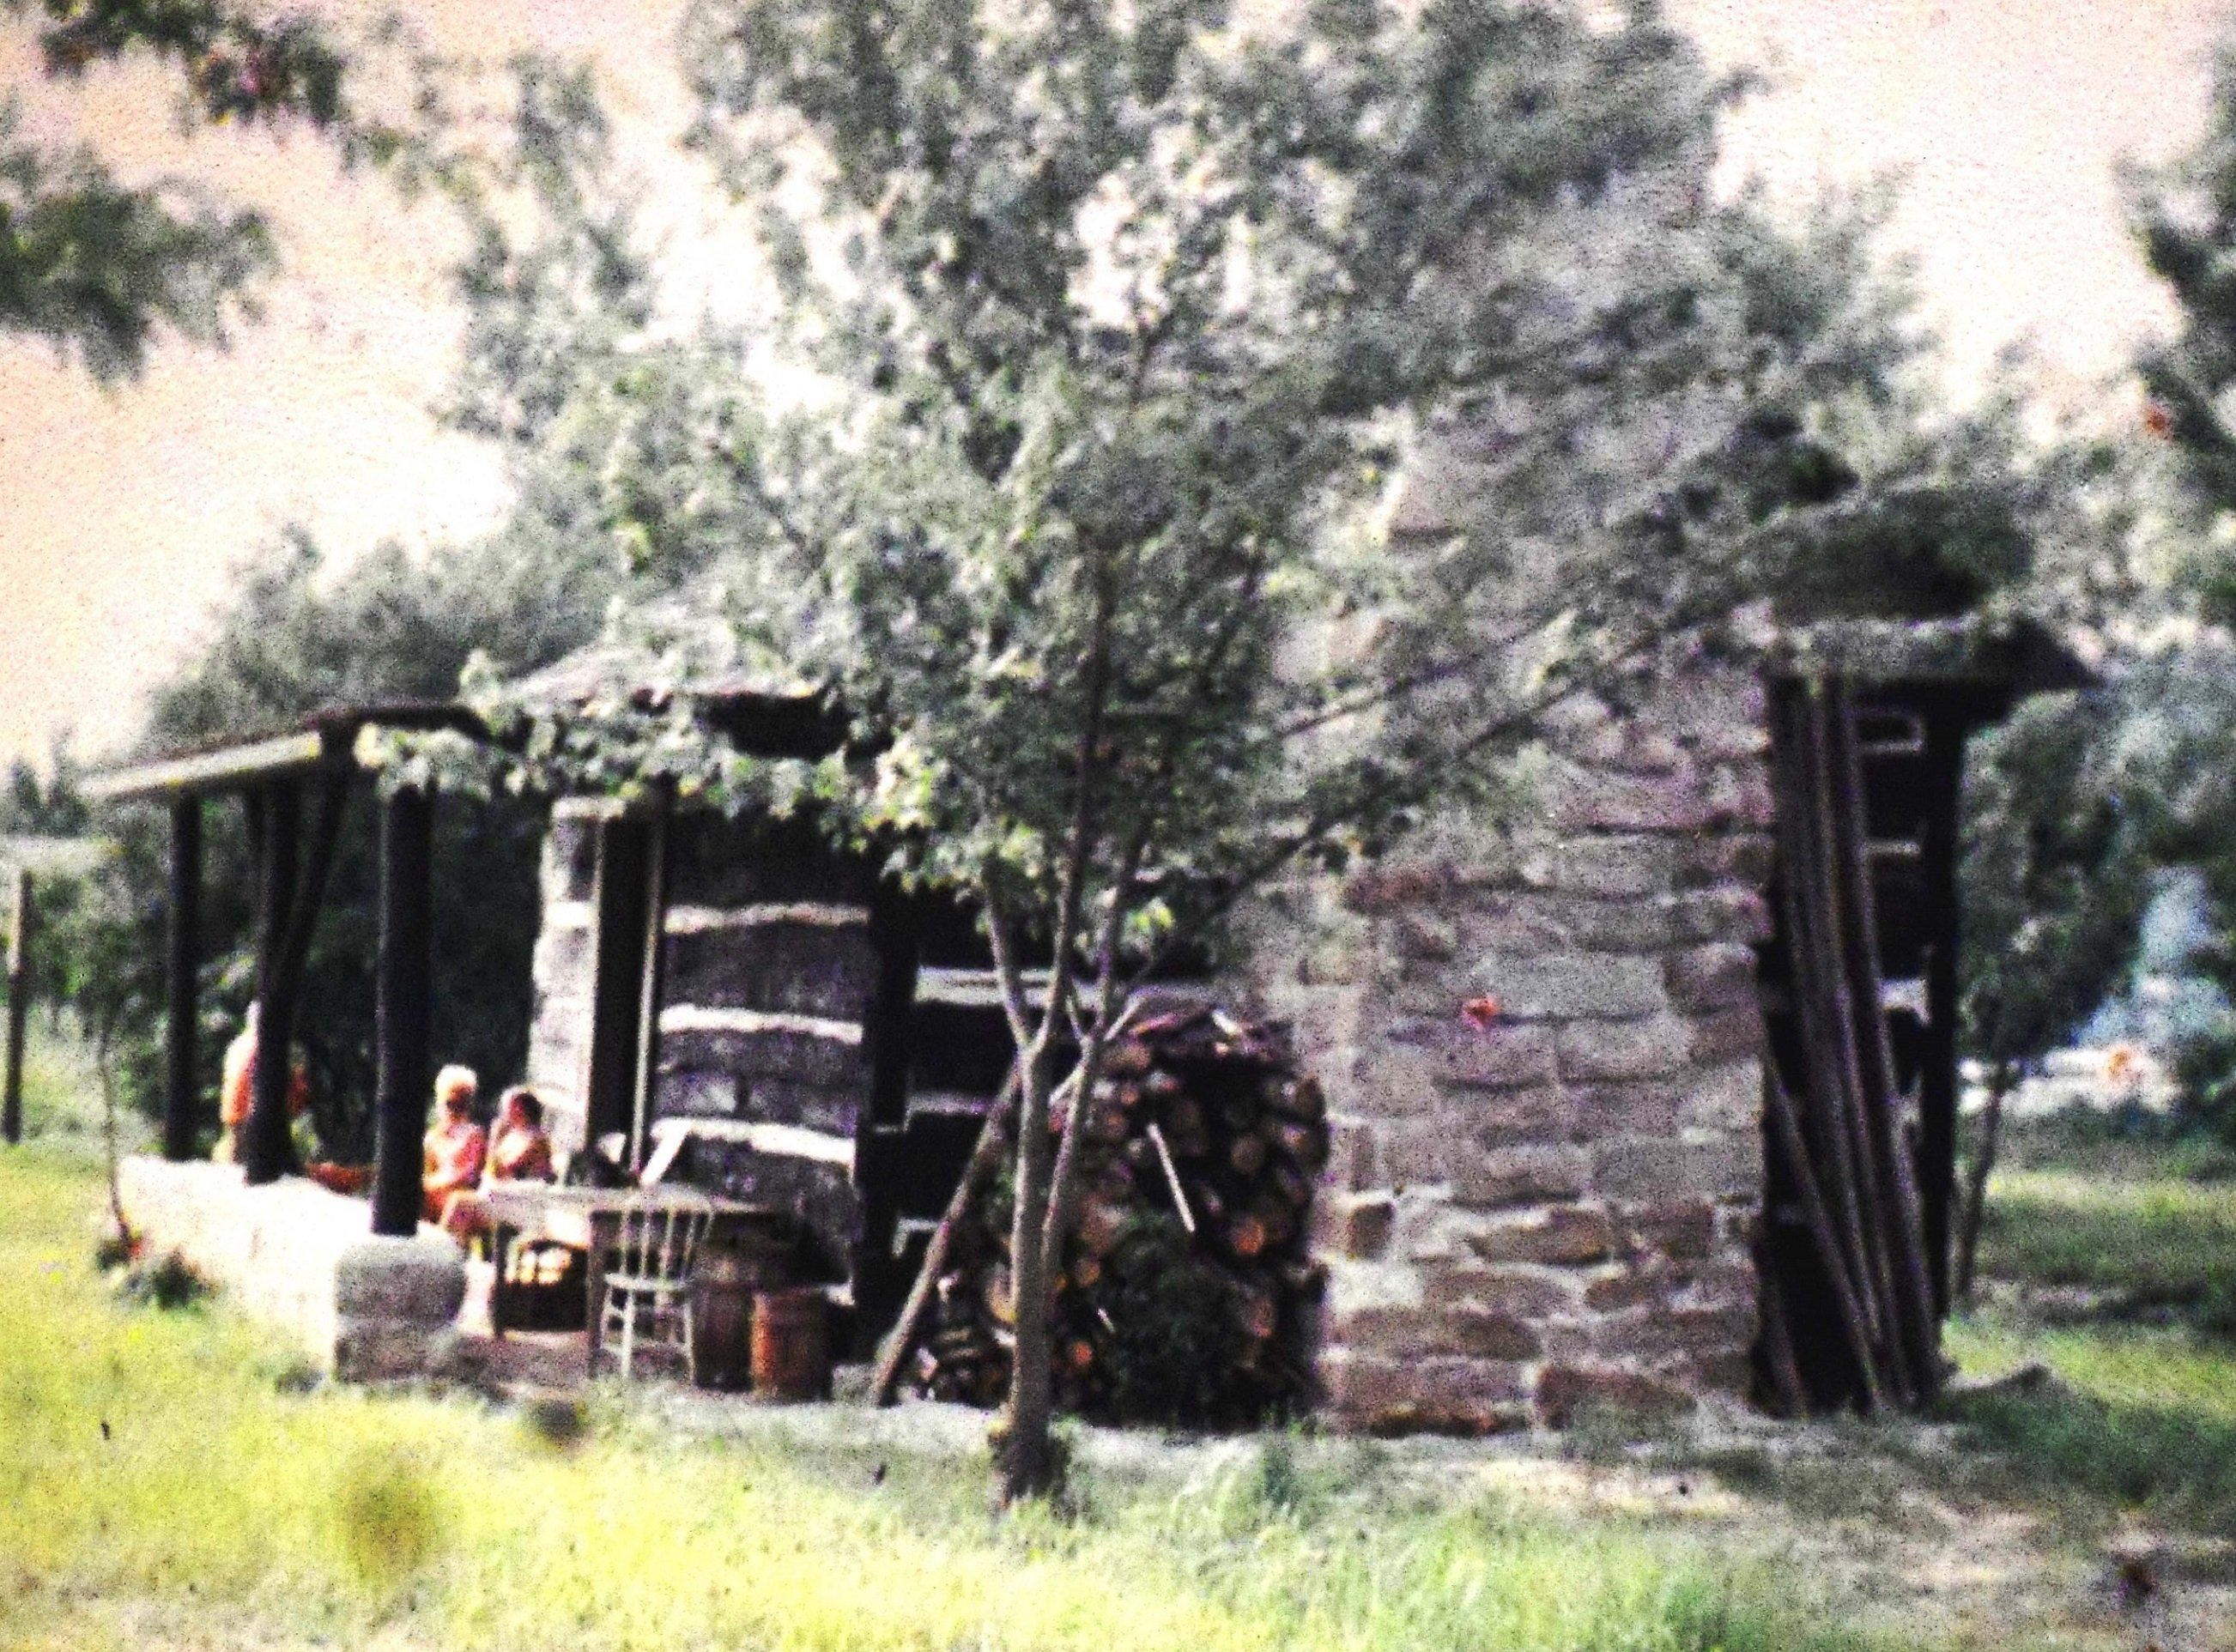 1972, shortly after the move. This was the start of the St. Albans Historical Society, formed to maintain the cabin